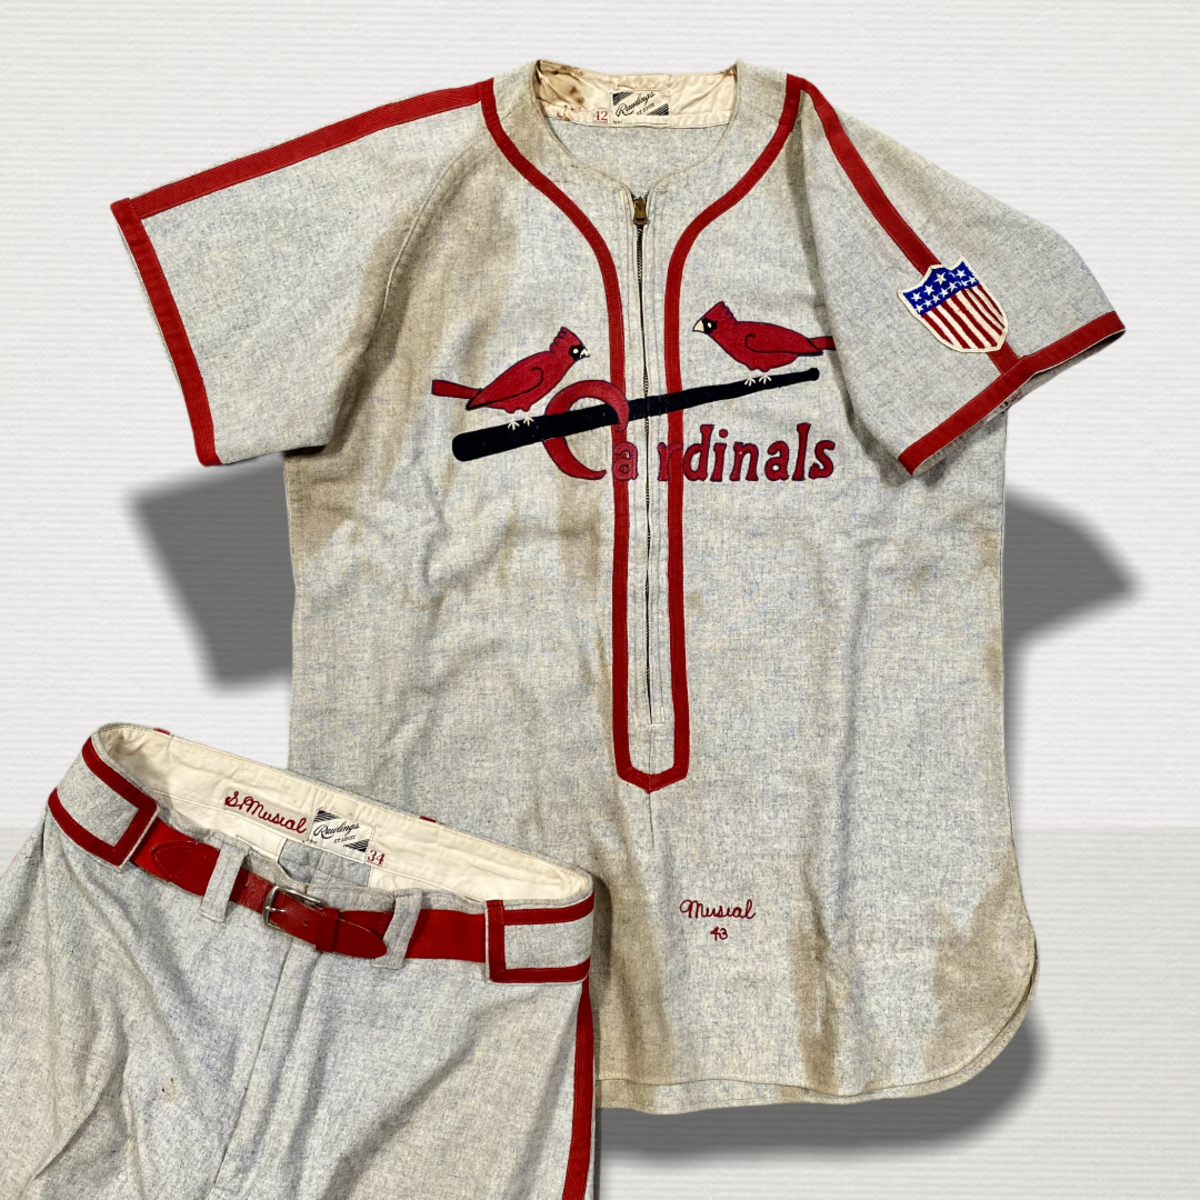 Stan Musial game-worn jersey from the 1943 World Series.